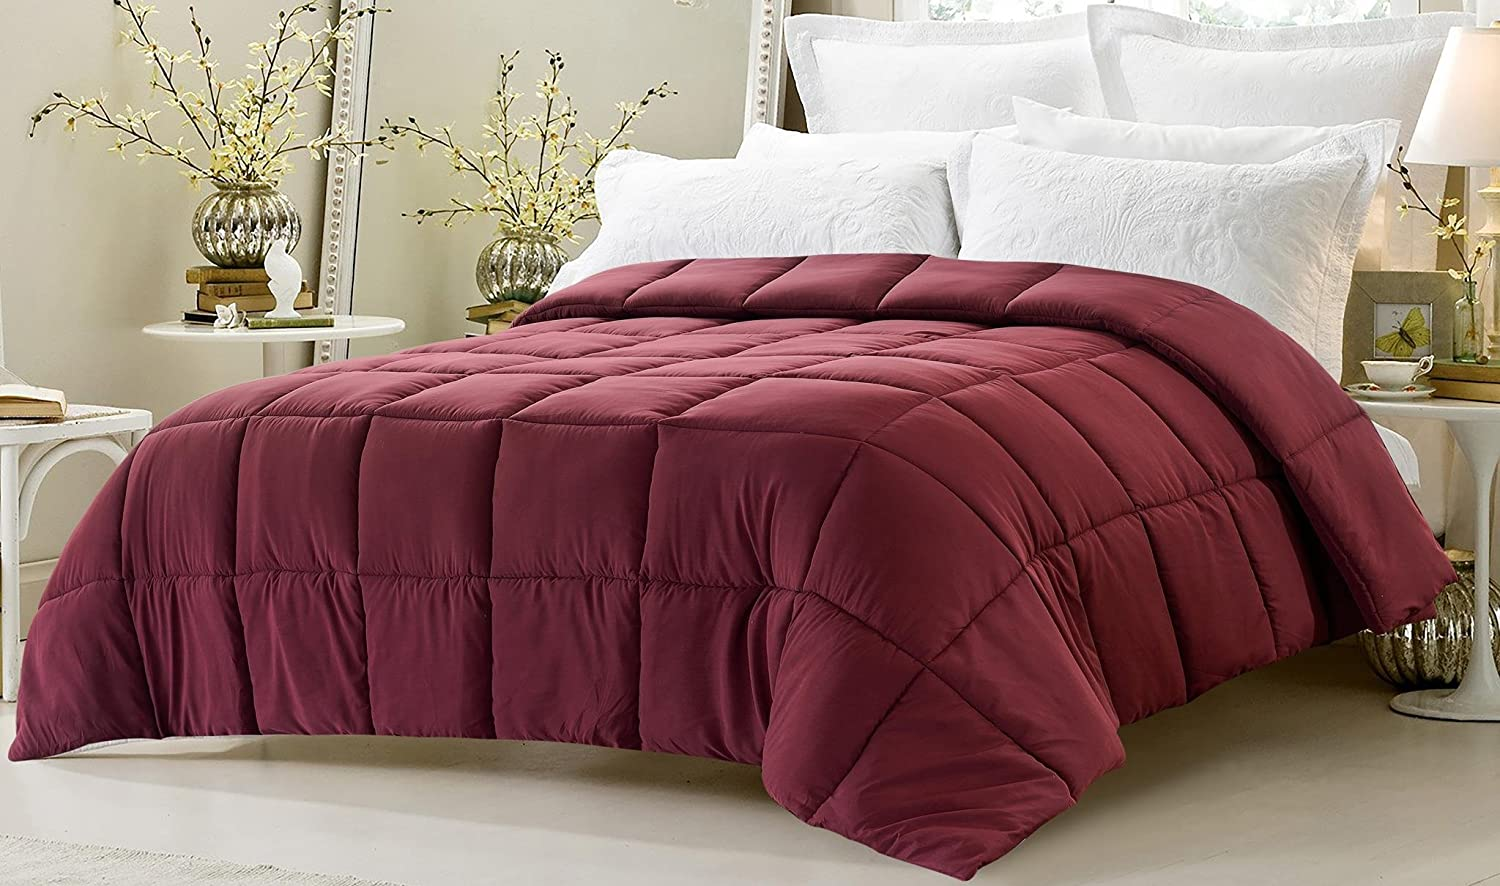 Super Oversized - Down Alternative Comforter - Fits Pillow Top Beds - Queen Burgundy